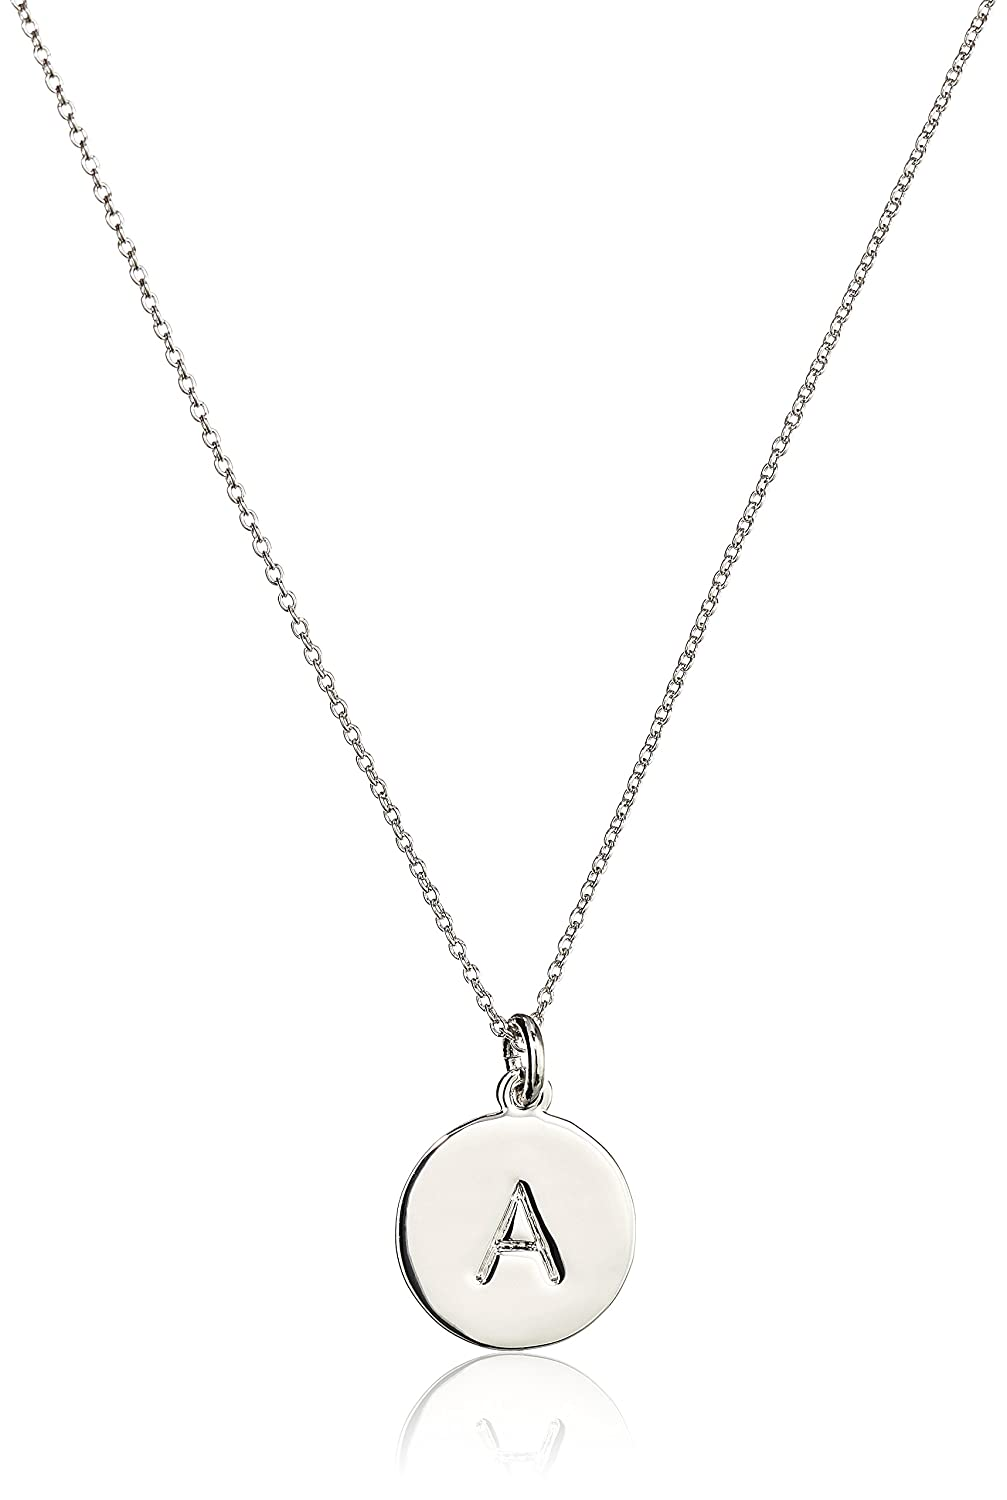 york b jewelry alphabet dp necklace kate pendant new spade com pendants amazon